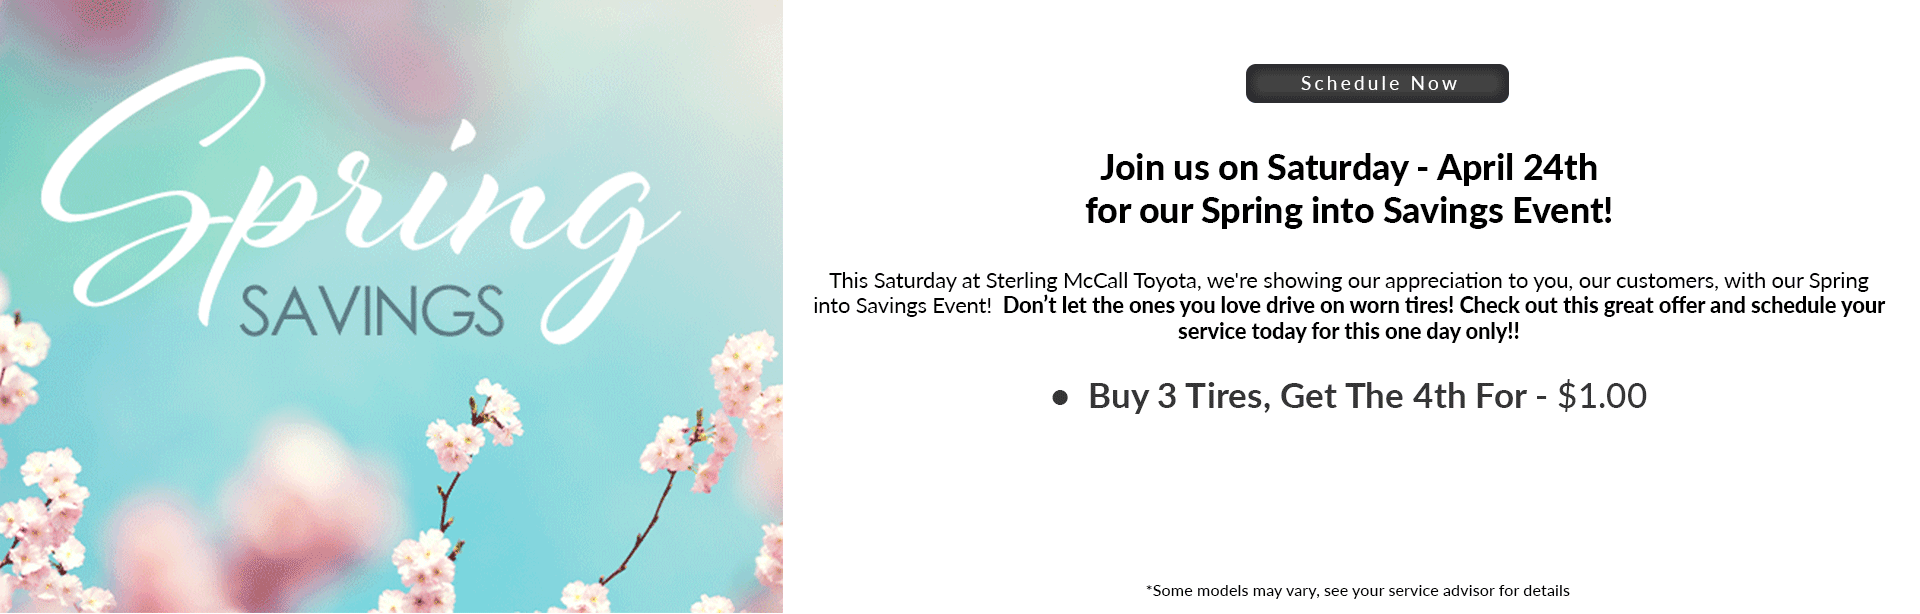 MARCH-Web-Sterling-McCall-Toyota